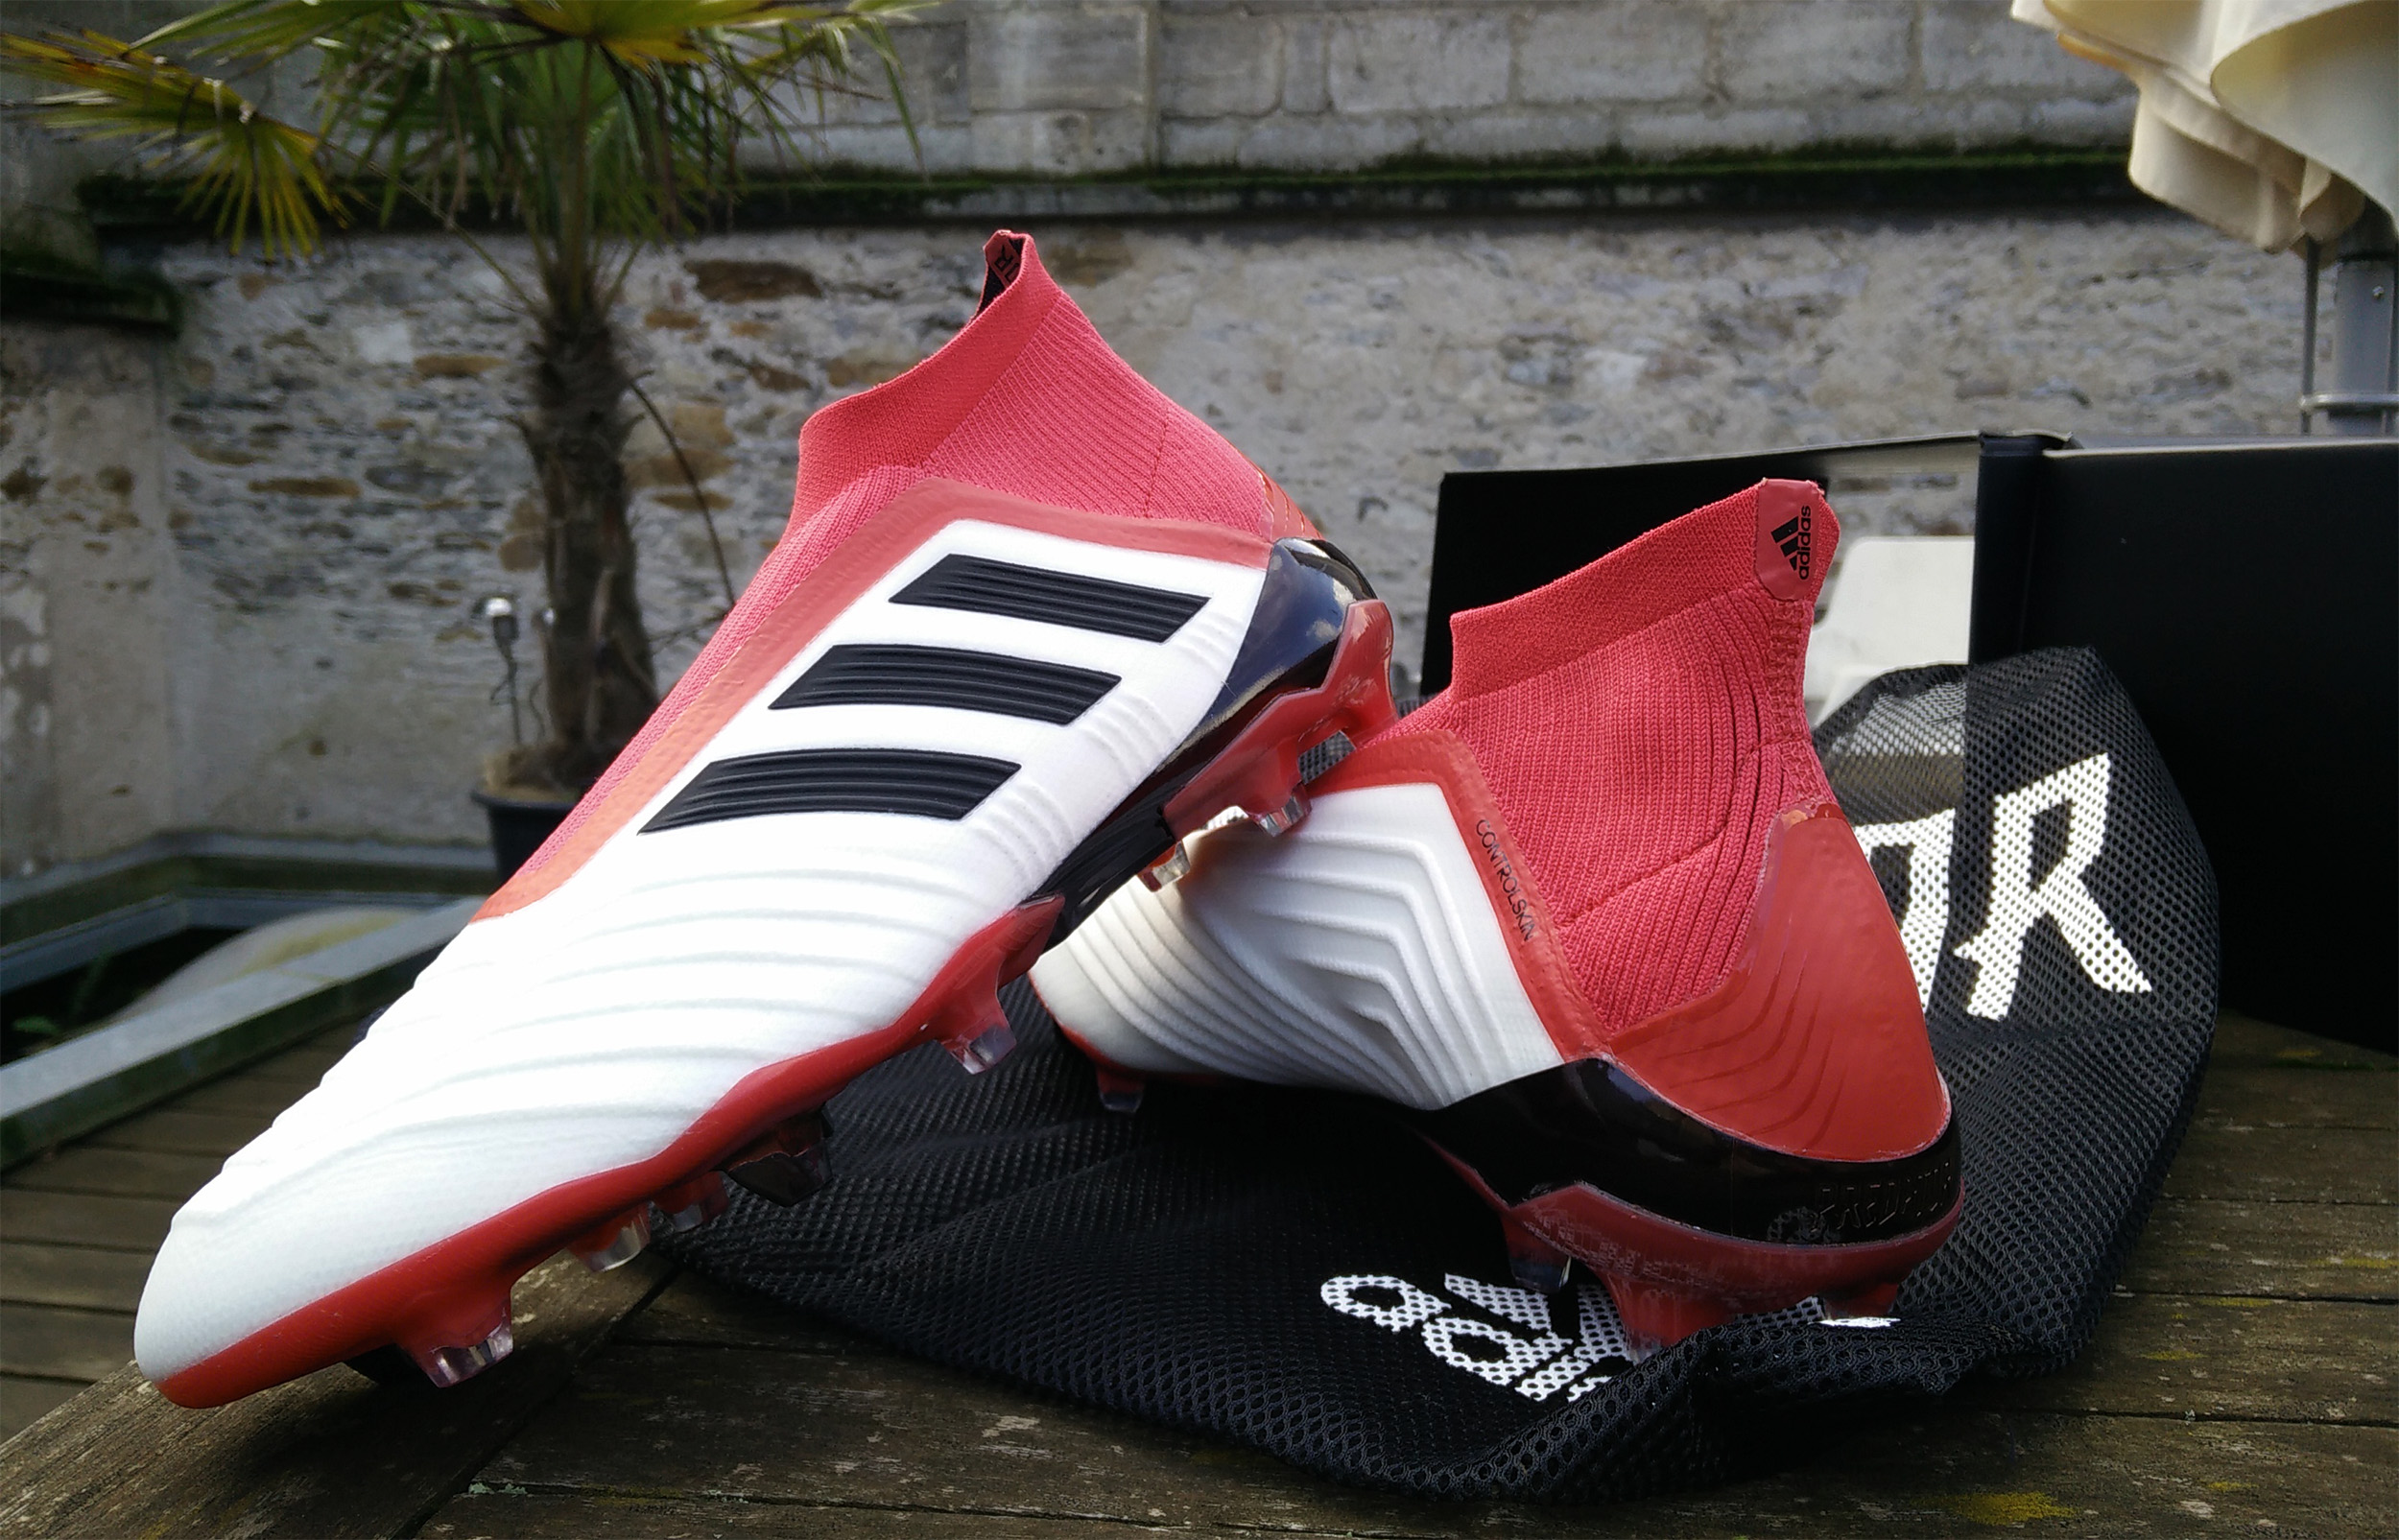 affordable price cheap for sale new lower prices Notre test de la nouvelle adidas Predator 18+ Cold Blooded